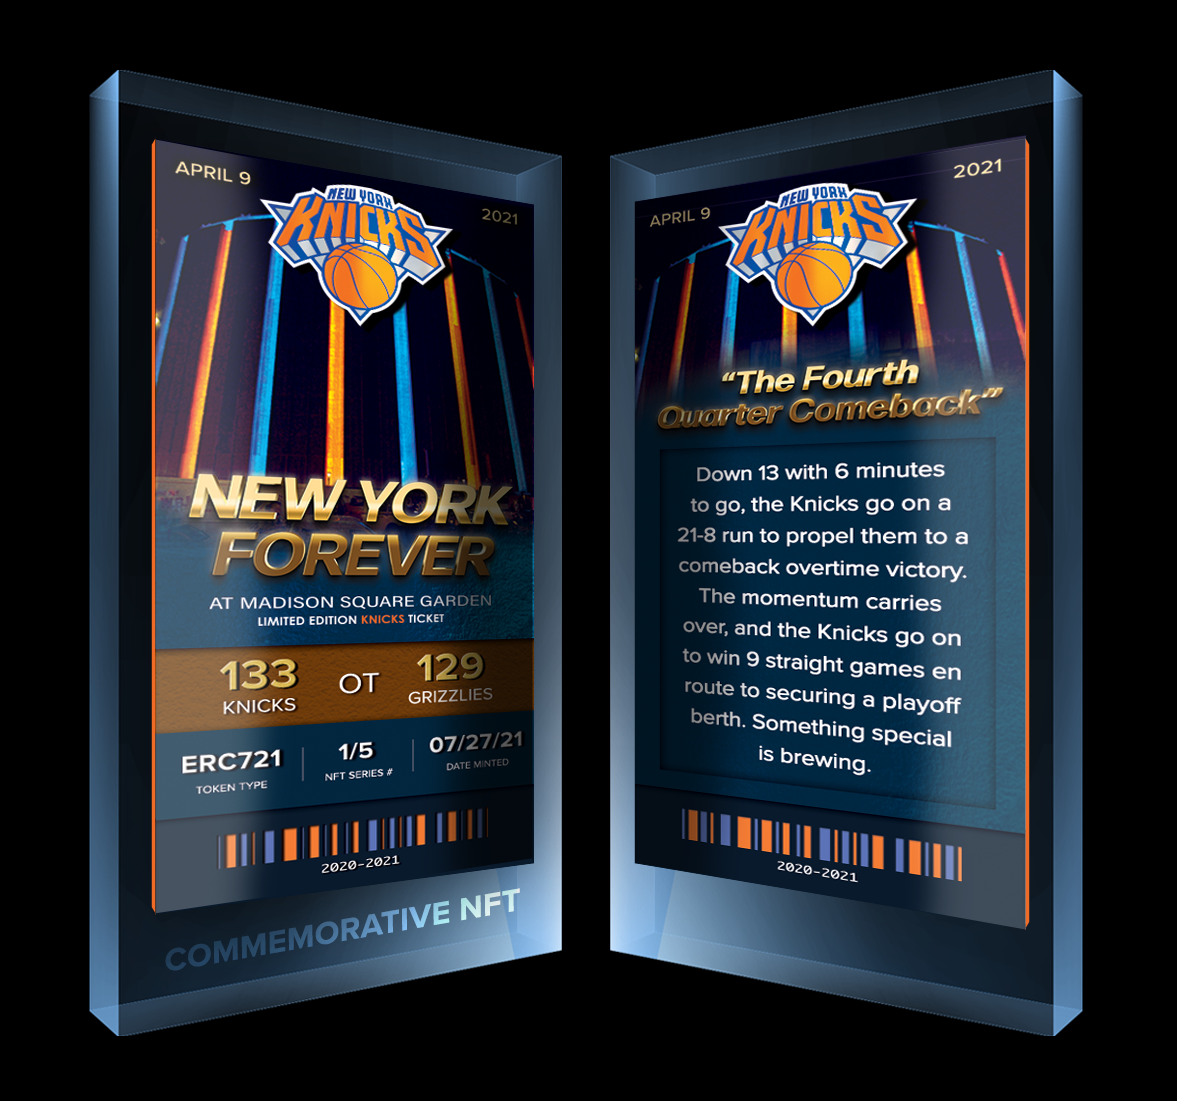 The new digital collectibles celebrate key moments from the team that brought excitement back to the Garden. Following a surprise 41-31 season that led to their first playoff appearance in eight years, the New York Knicks launched a series of limited-edition 3D NFTs on Tuesday centered around their biggest home wins from their standout 2020-2021 […]  The post Knicks Celebrate 2020-21 Season With First-ever NFT Collection appeared first on Boardroom.